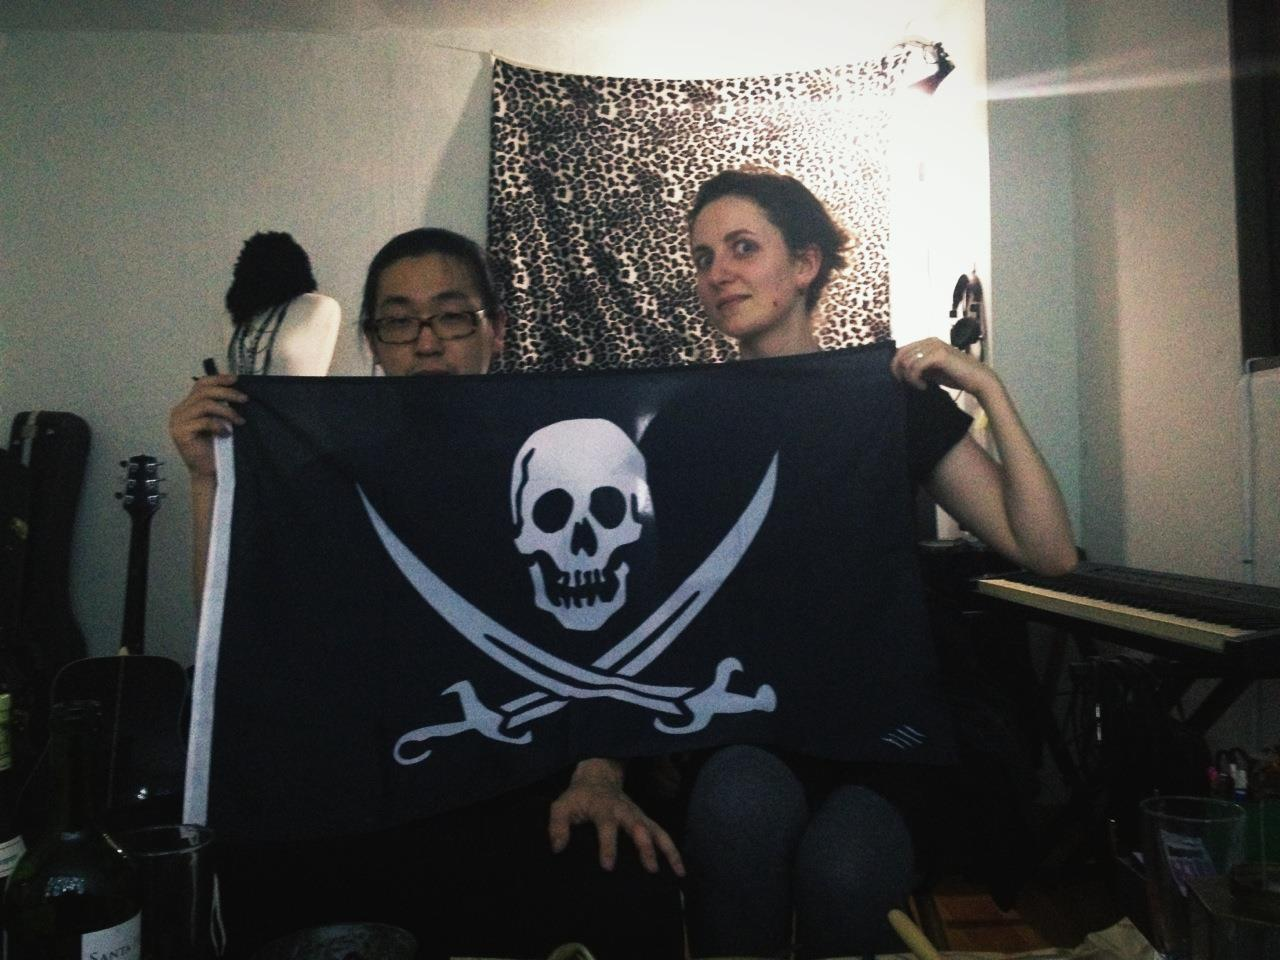 thepirateflag:  [Occupied]  Marine och Taewha - Got flag.  By Cap'n @marinevidal  Make your own Flag, visit  http://thepirateflag.tumblr.com